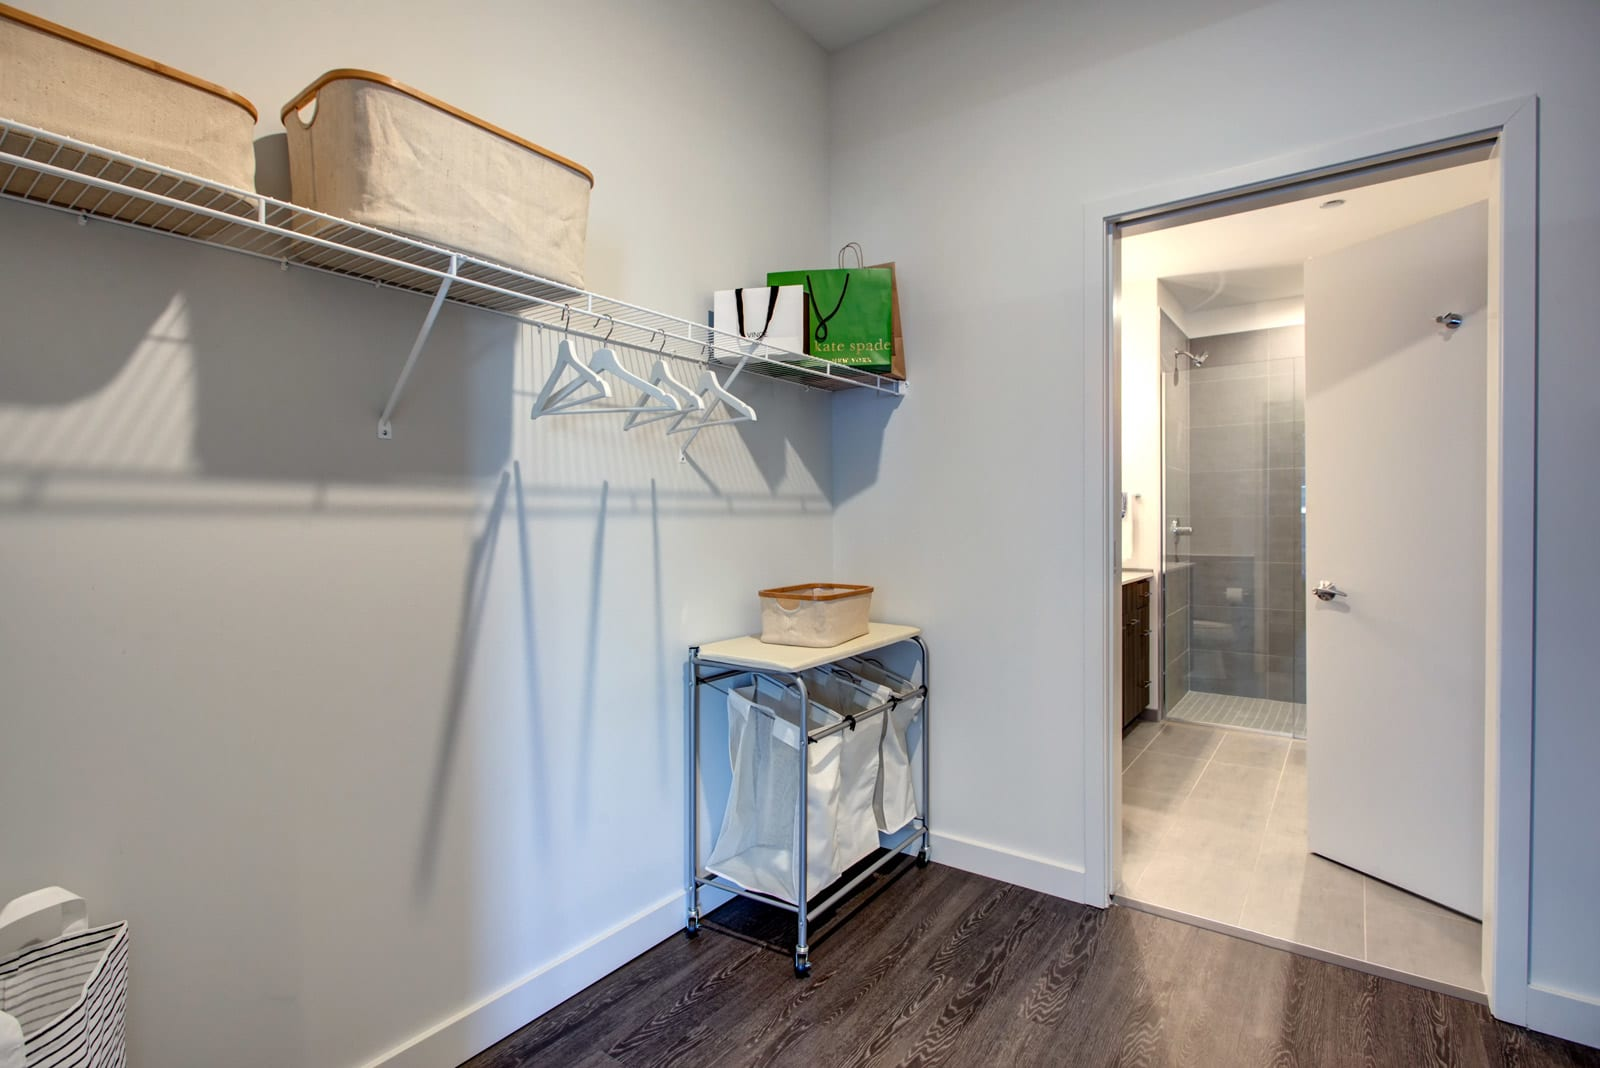 Abundant Storage Including Walk-In Closets at 640 North Wells, 60654, IL